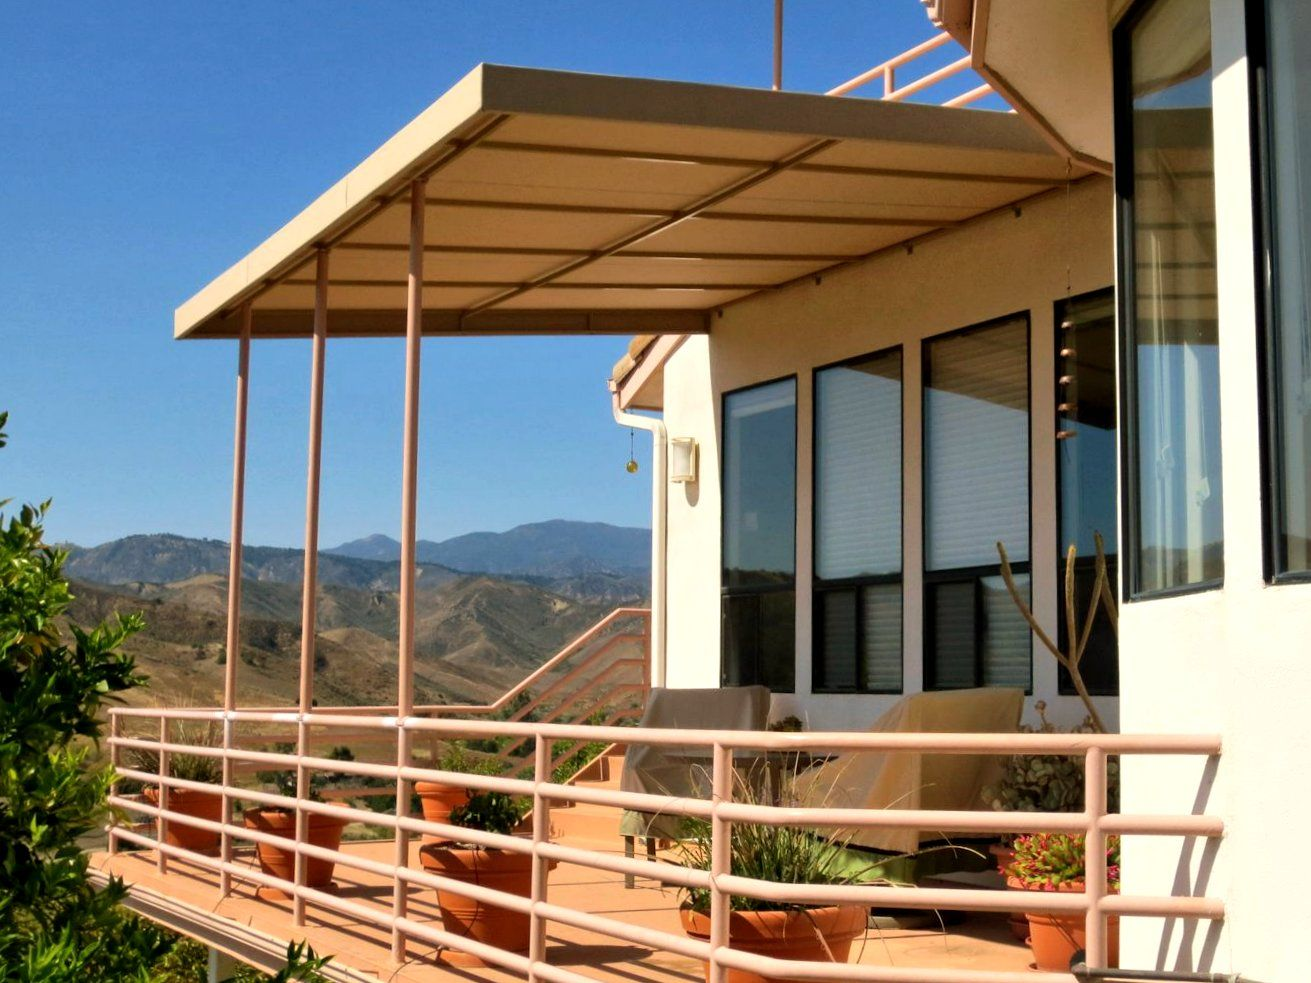 Residential Awnings Patio Covers By Superior Awning Residential Awnings Canvas Patio Covers Patio Deck Furniture